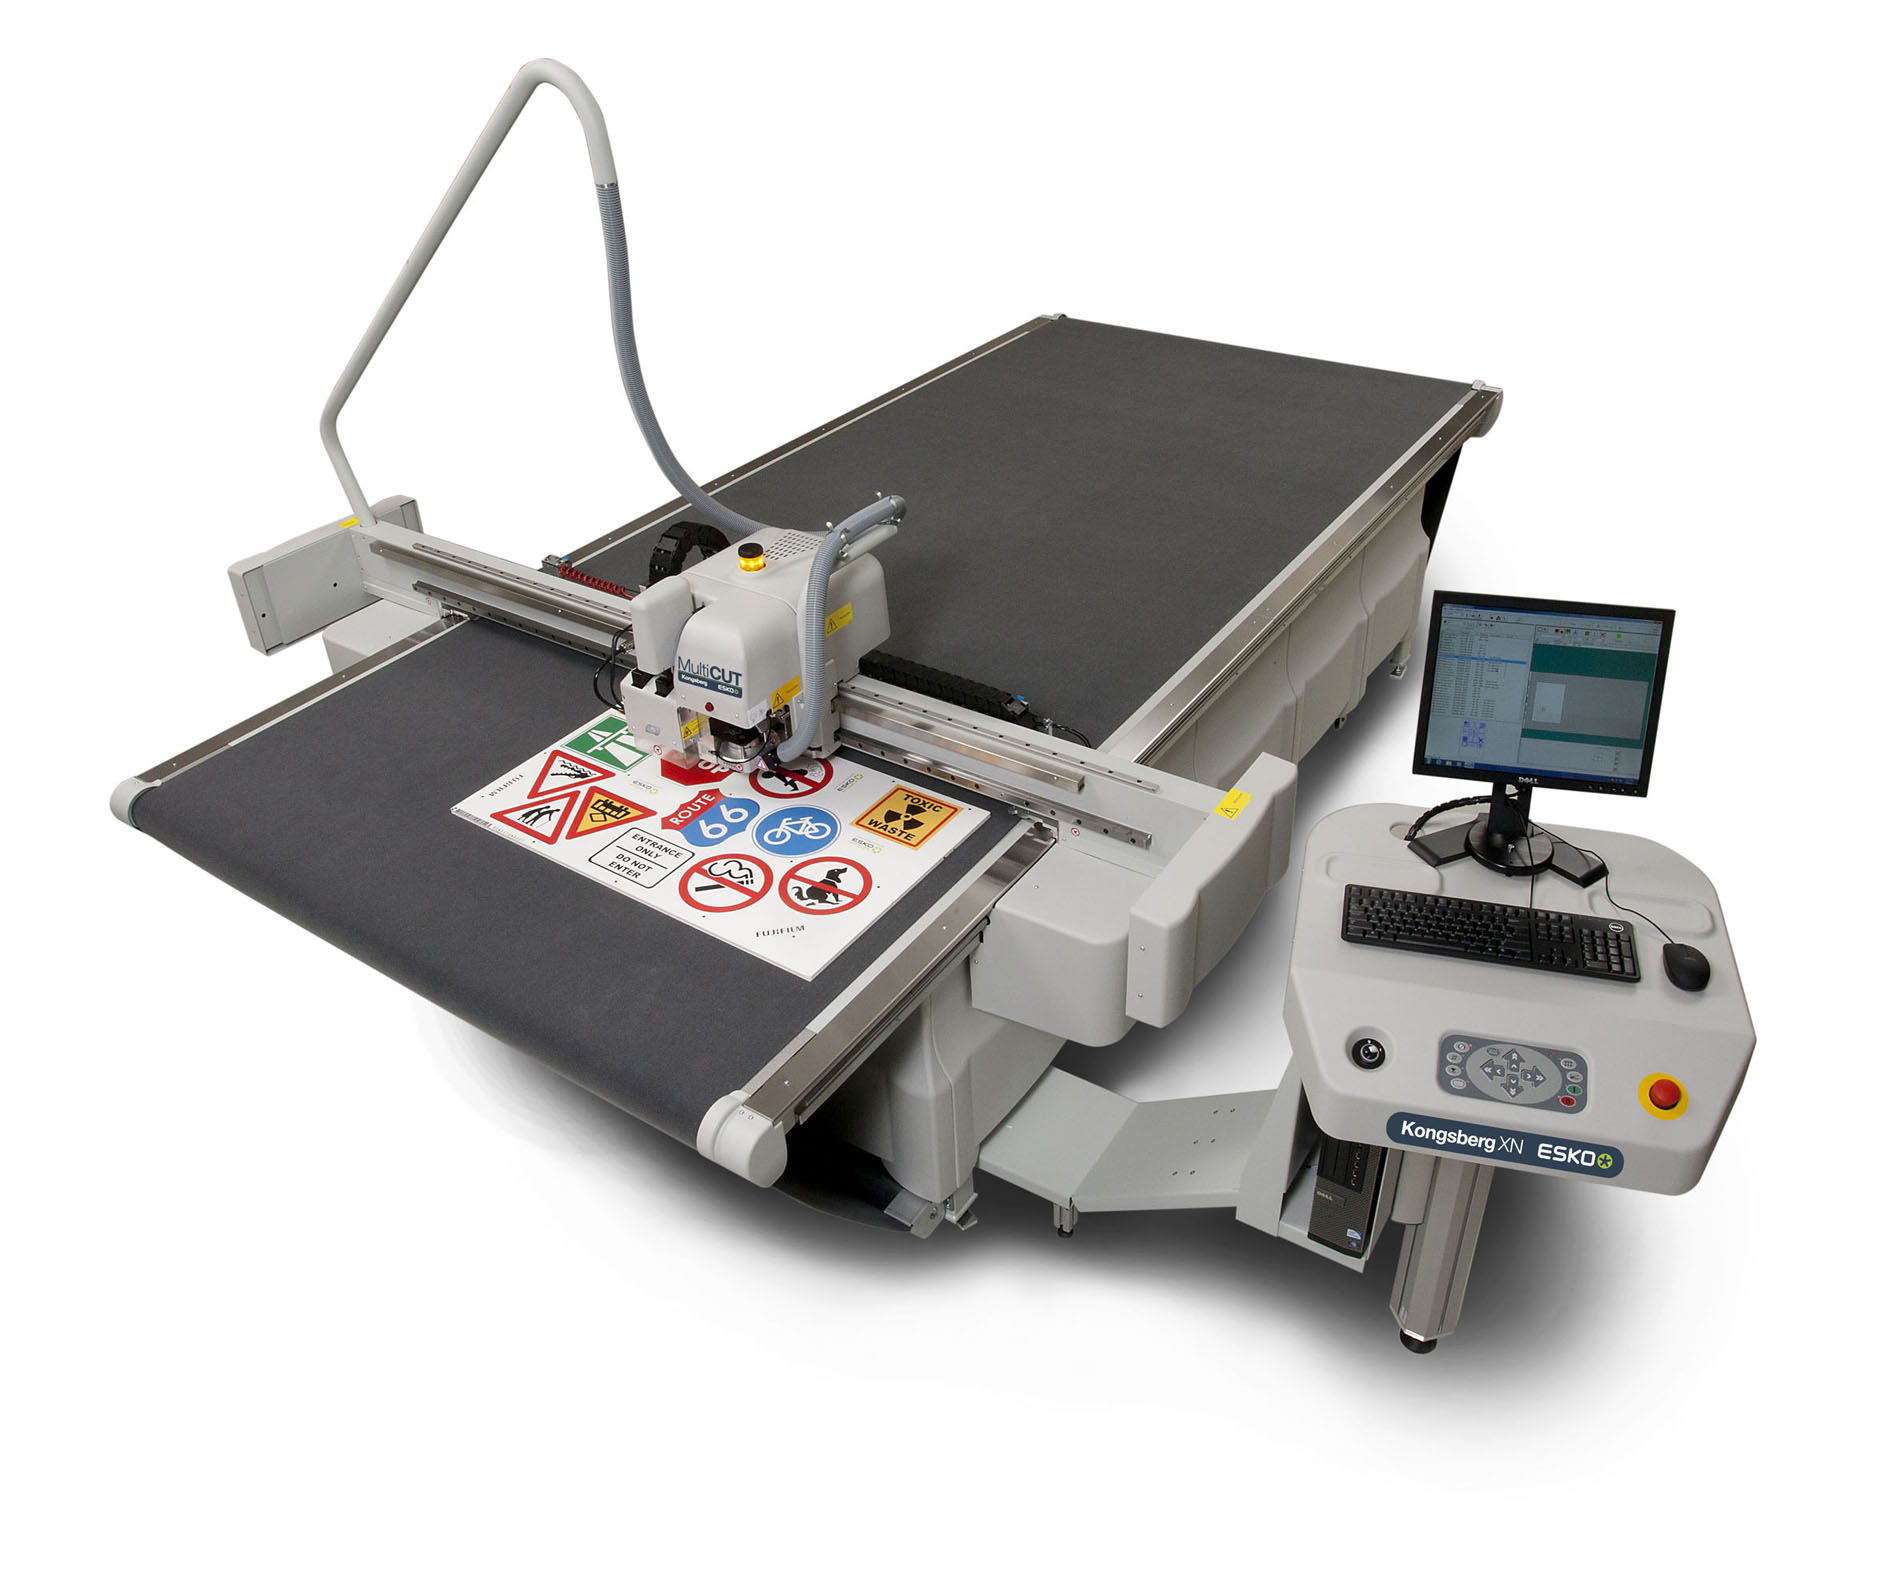 Our high-speed finishing table eliminates the need for die-cutting on smallrun projects. Perfect way to create custom packaging, sample boxes, large format cut-outs, custom shaped promotional signage... it even etches glass and metals!